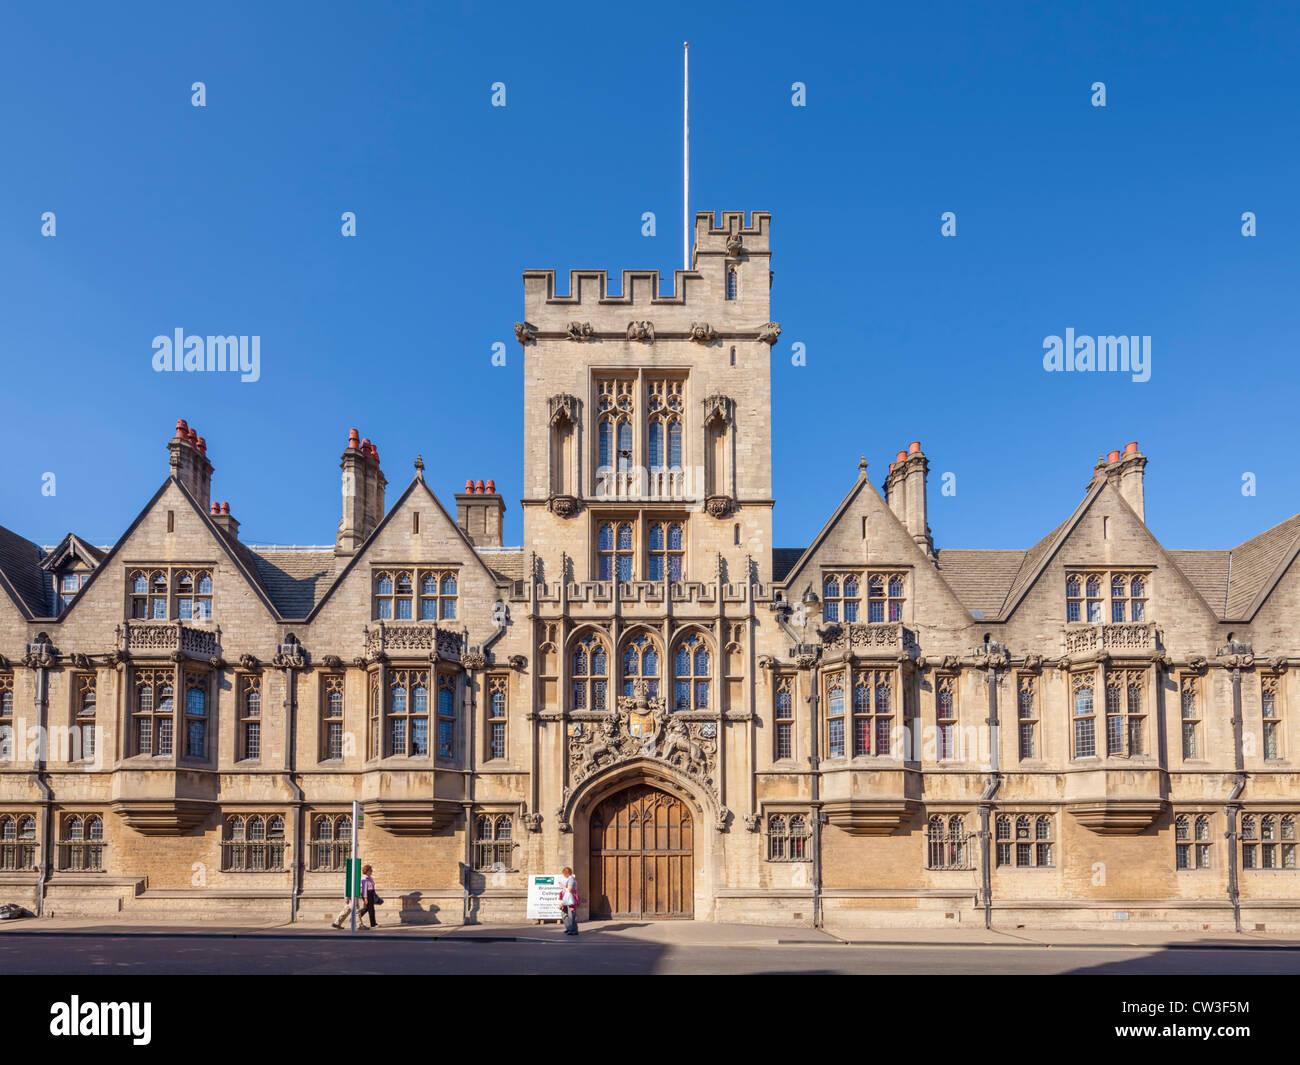 Brasenose College, Oxford - Stock Image